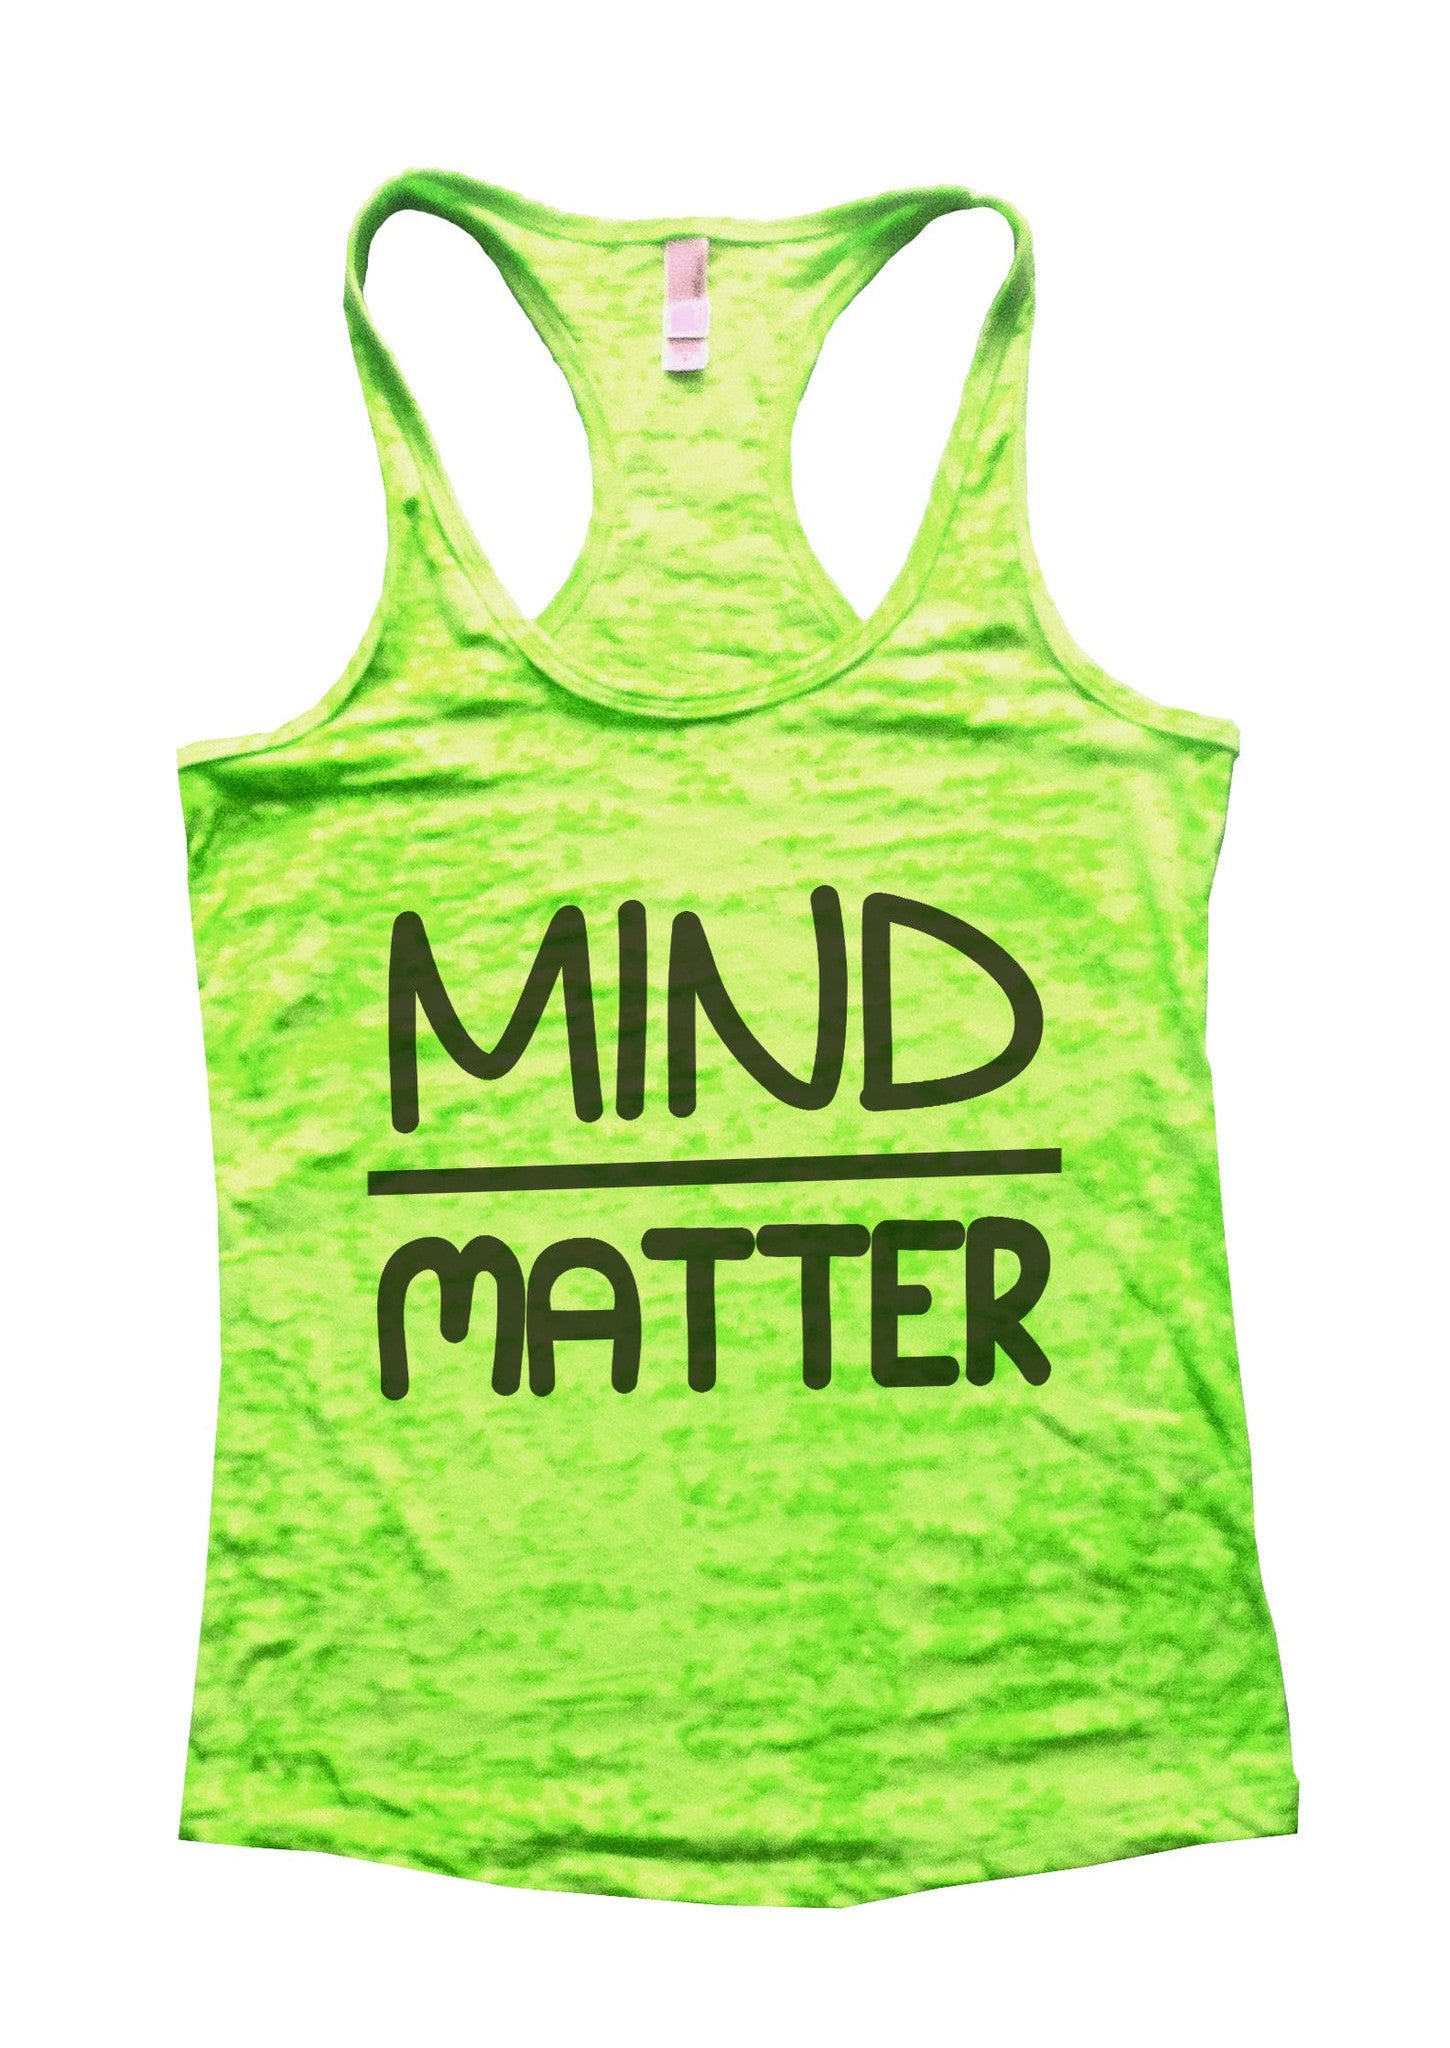 Mind Matter Burnout Tank Top By BurnoutTankTops.com - 655 - Funny Shirts Tank Tops Burnouts and Triblends  - 1